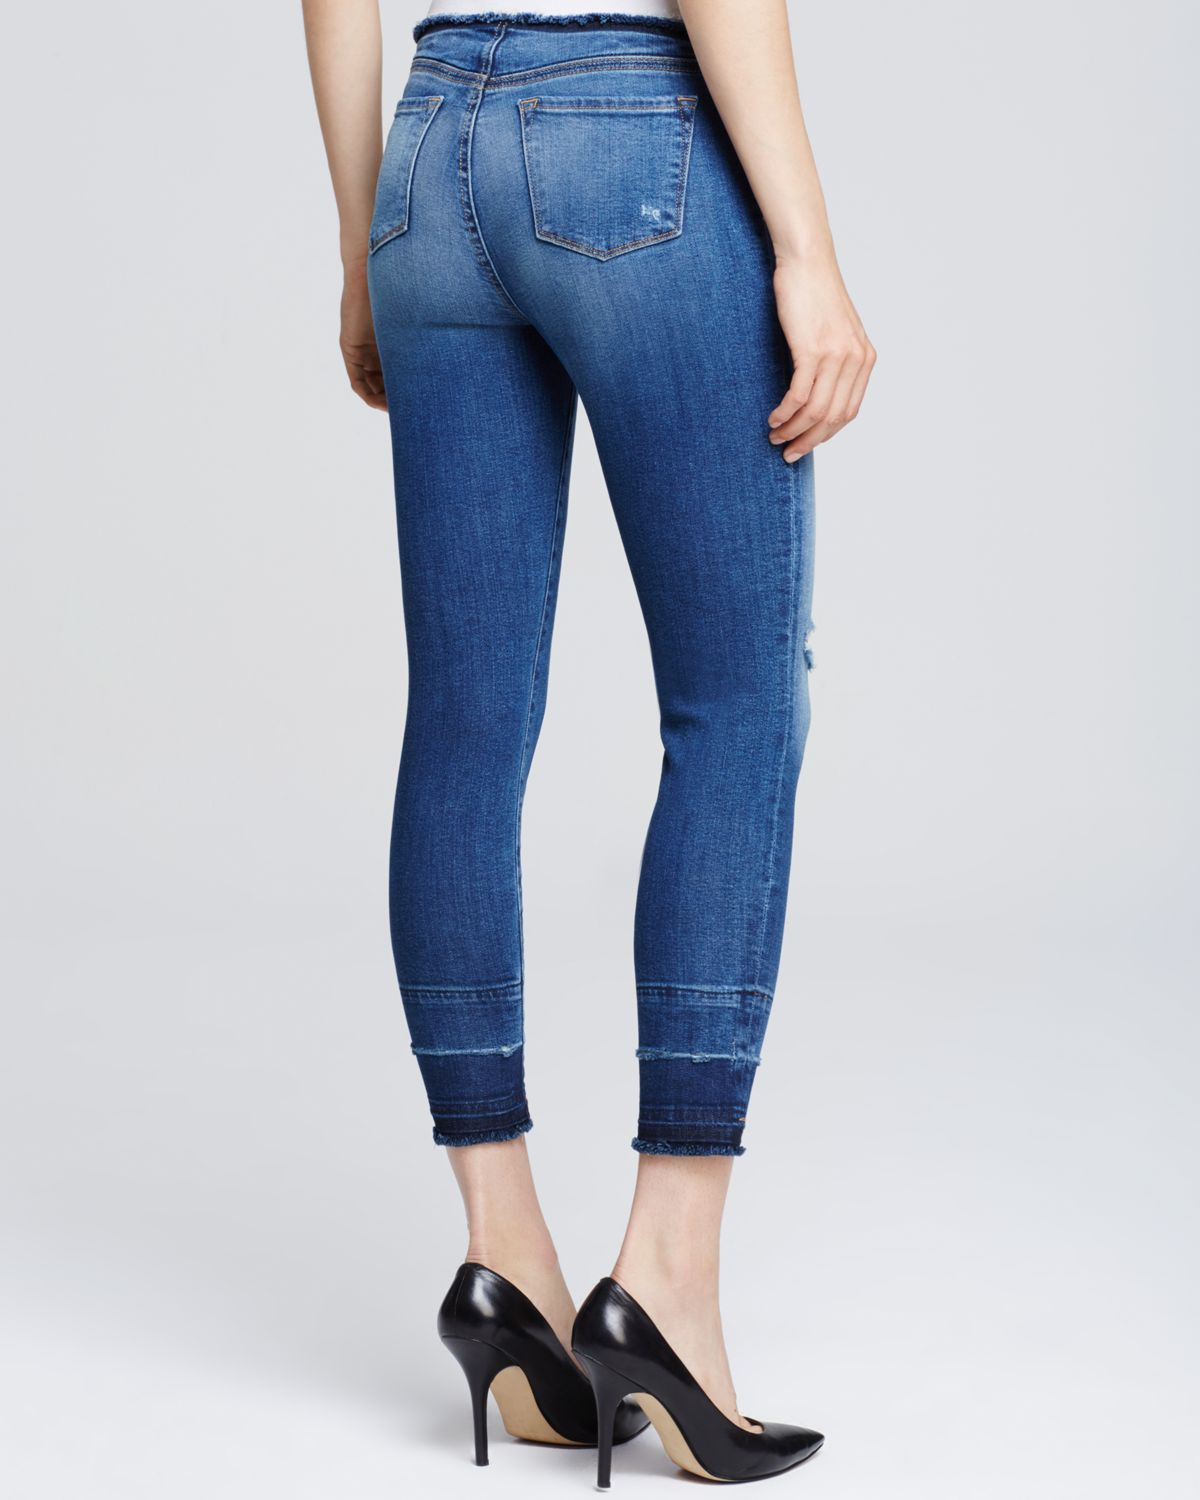 The jeans were more tight fitting and were not as comfy as other skinny jeans I've ordered. I'll consider spending more on a specific look next time because I wore them once. That uncomfortable tight fit at the hips has brought me to donate the jeans.2/5(1).